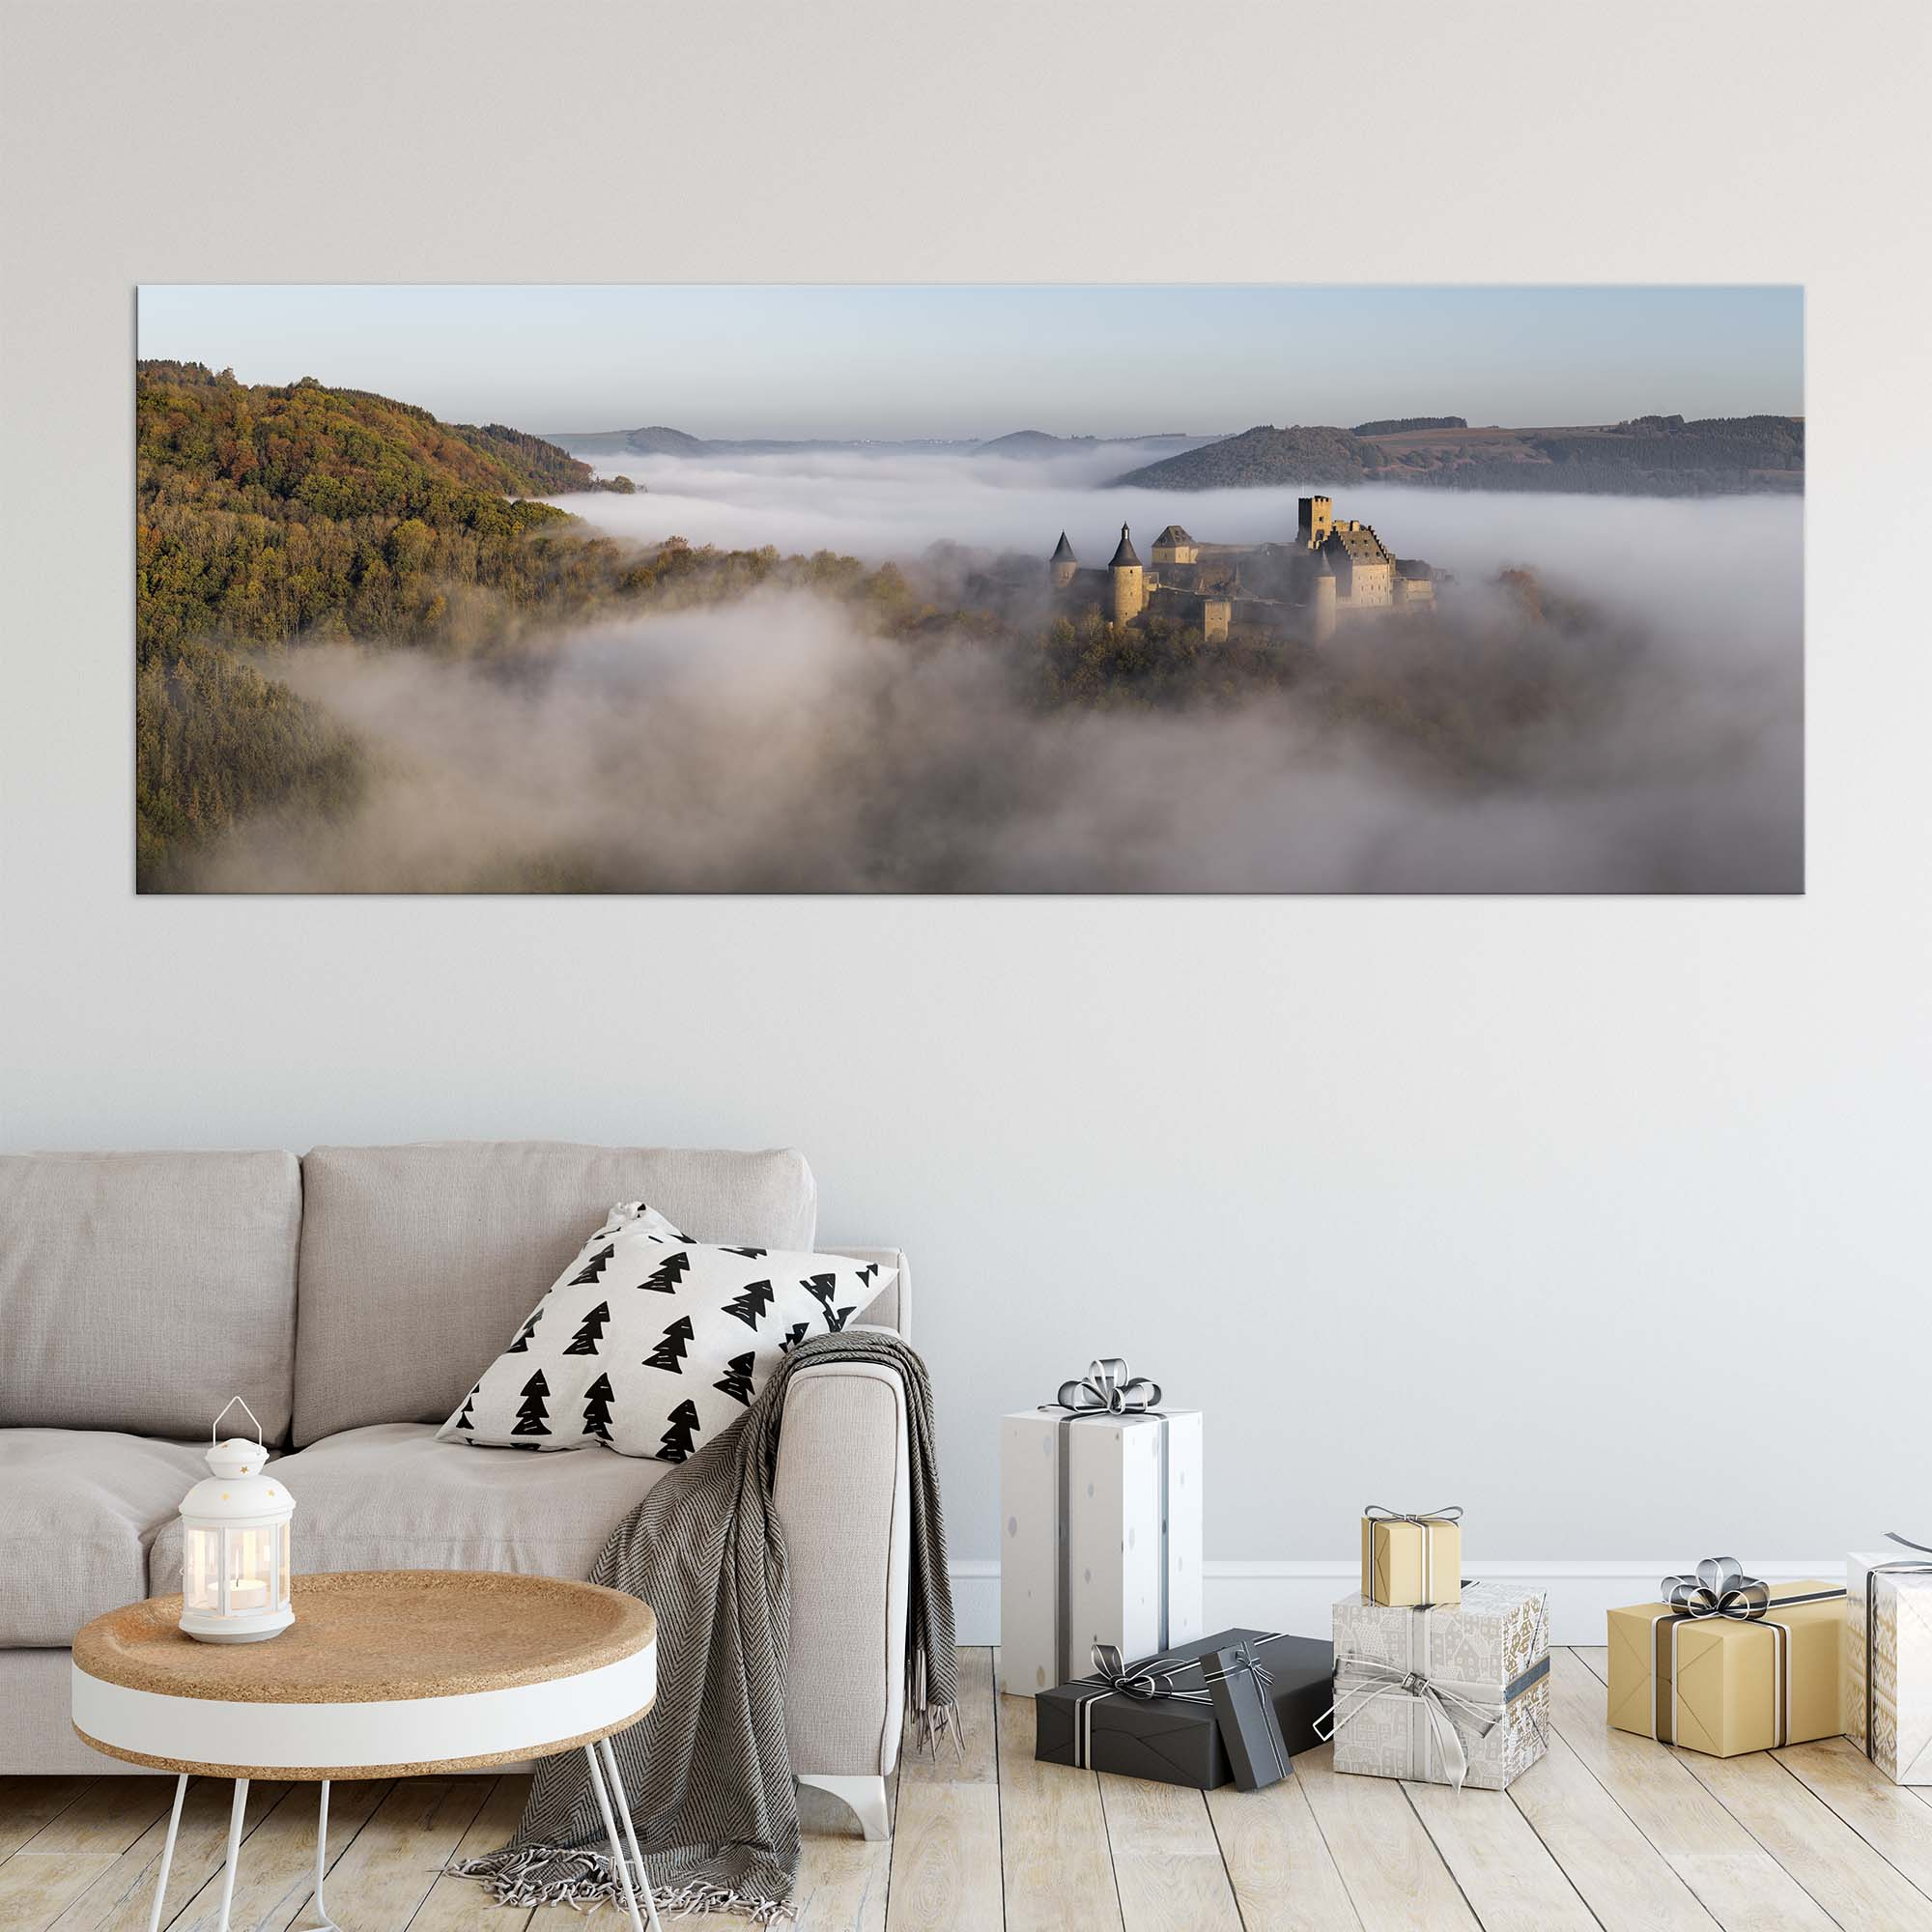 Luxembourg Christmas Gifts - Artworks - Panoramic Acrylic Art Print - Castle in the Fog - Photography by Christophe Van Biesen